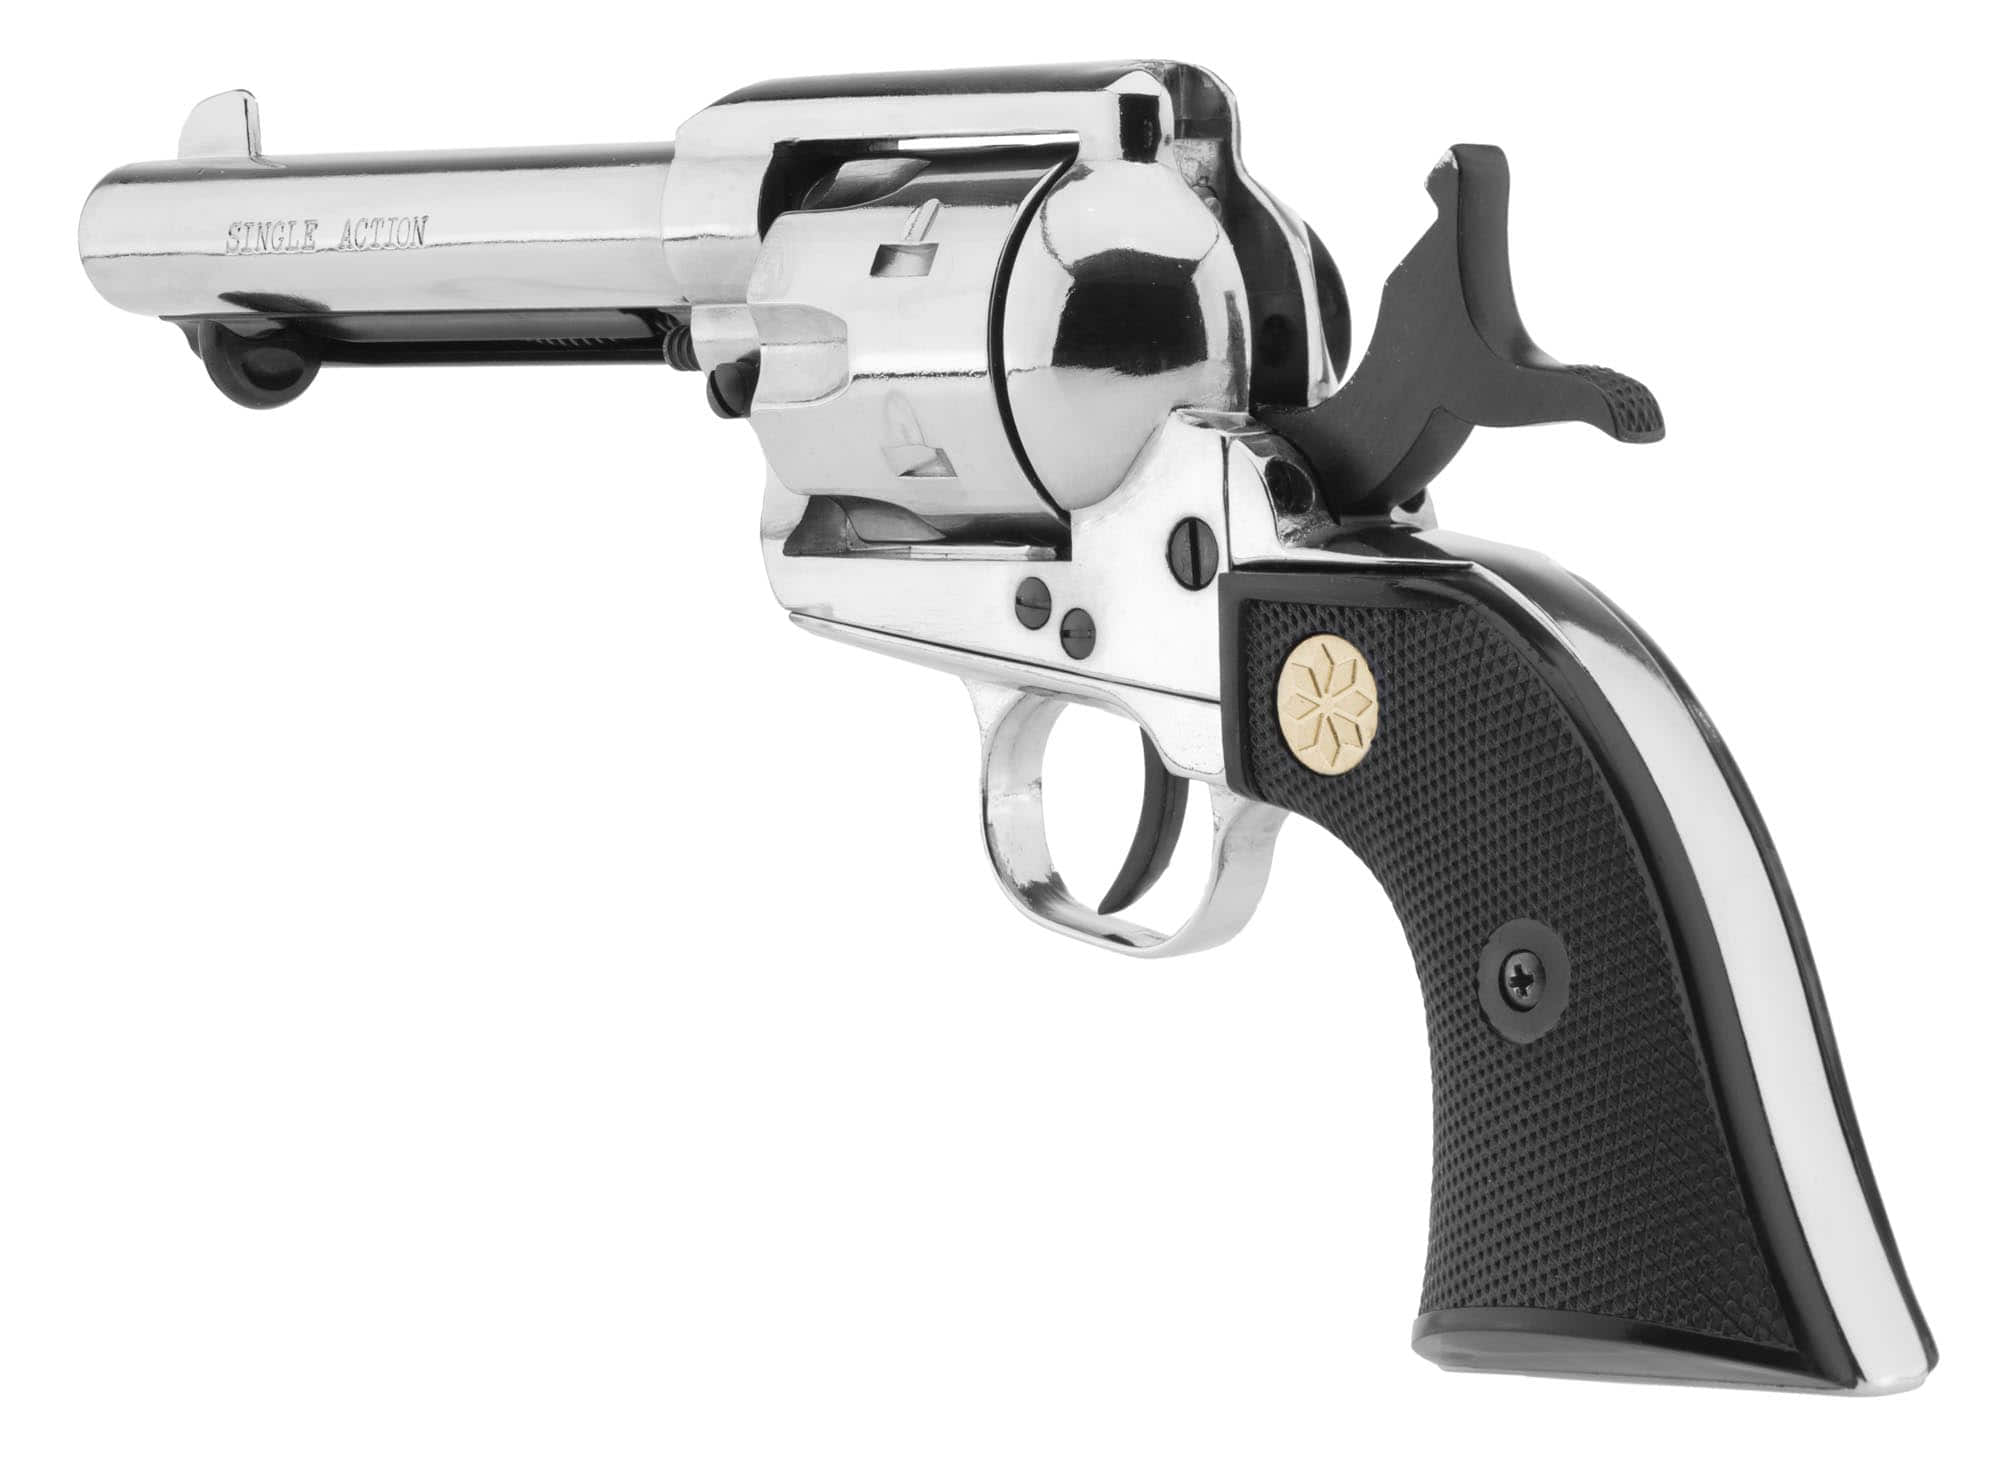 AB255-4-REVOLVER SINGLE ACTION 4 pouces  3/4 Cal.380 NICKEL - AB255